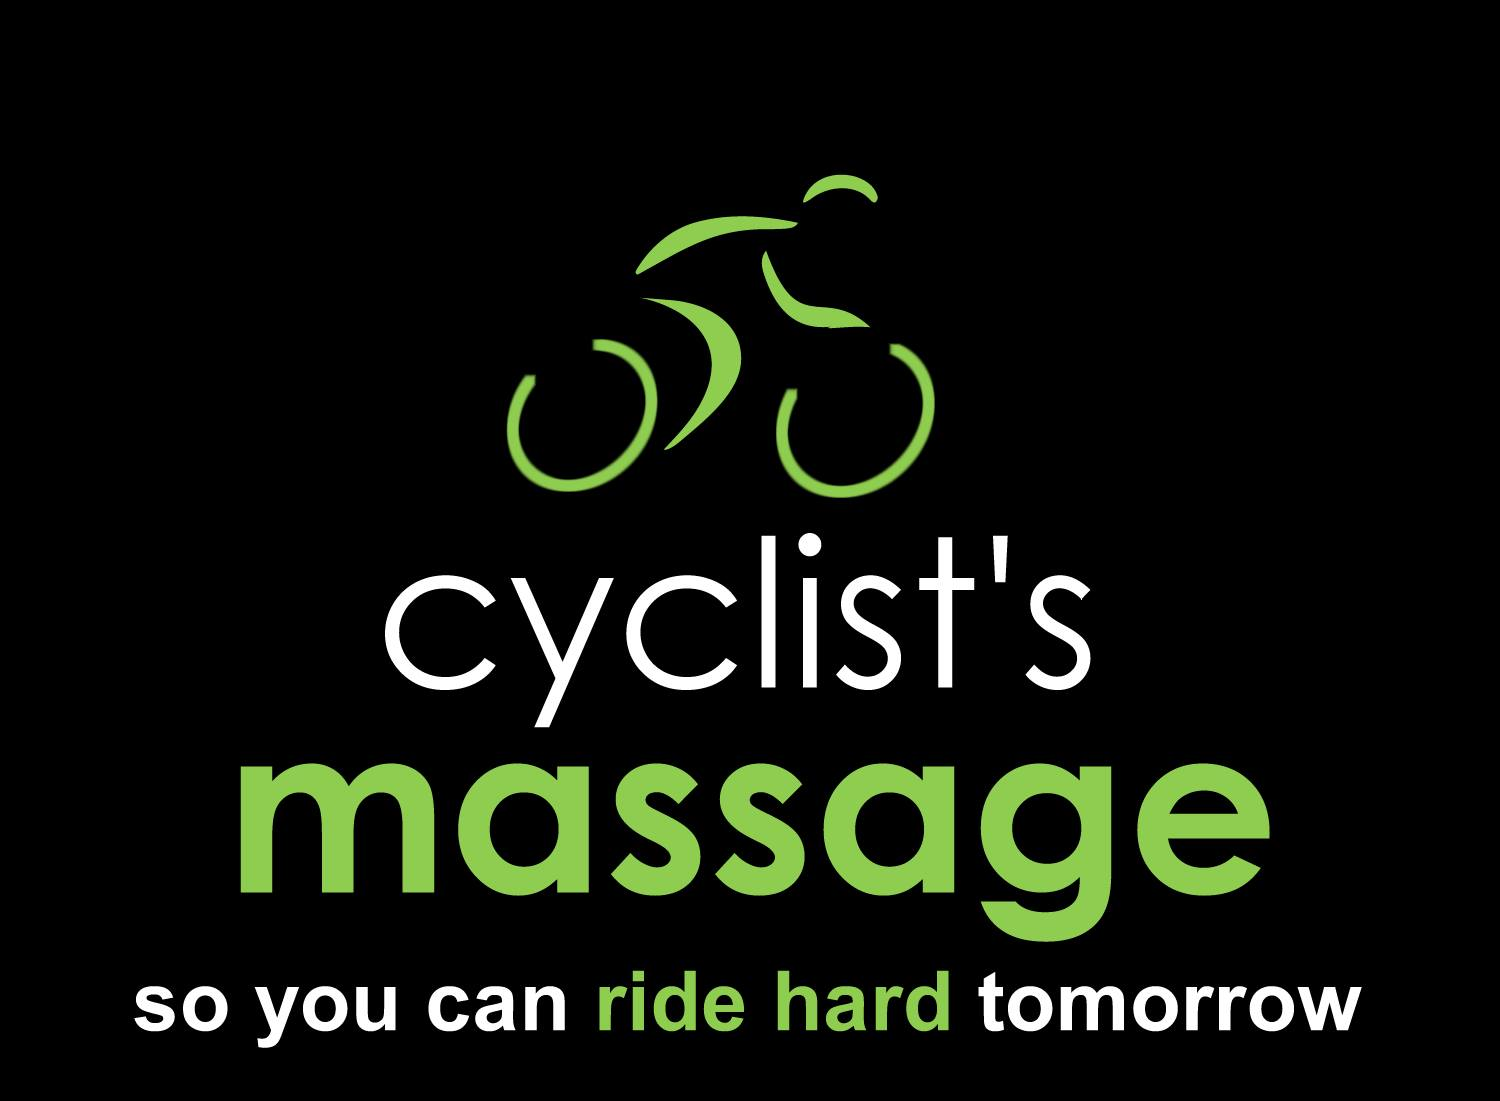 Cyclists Massage